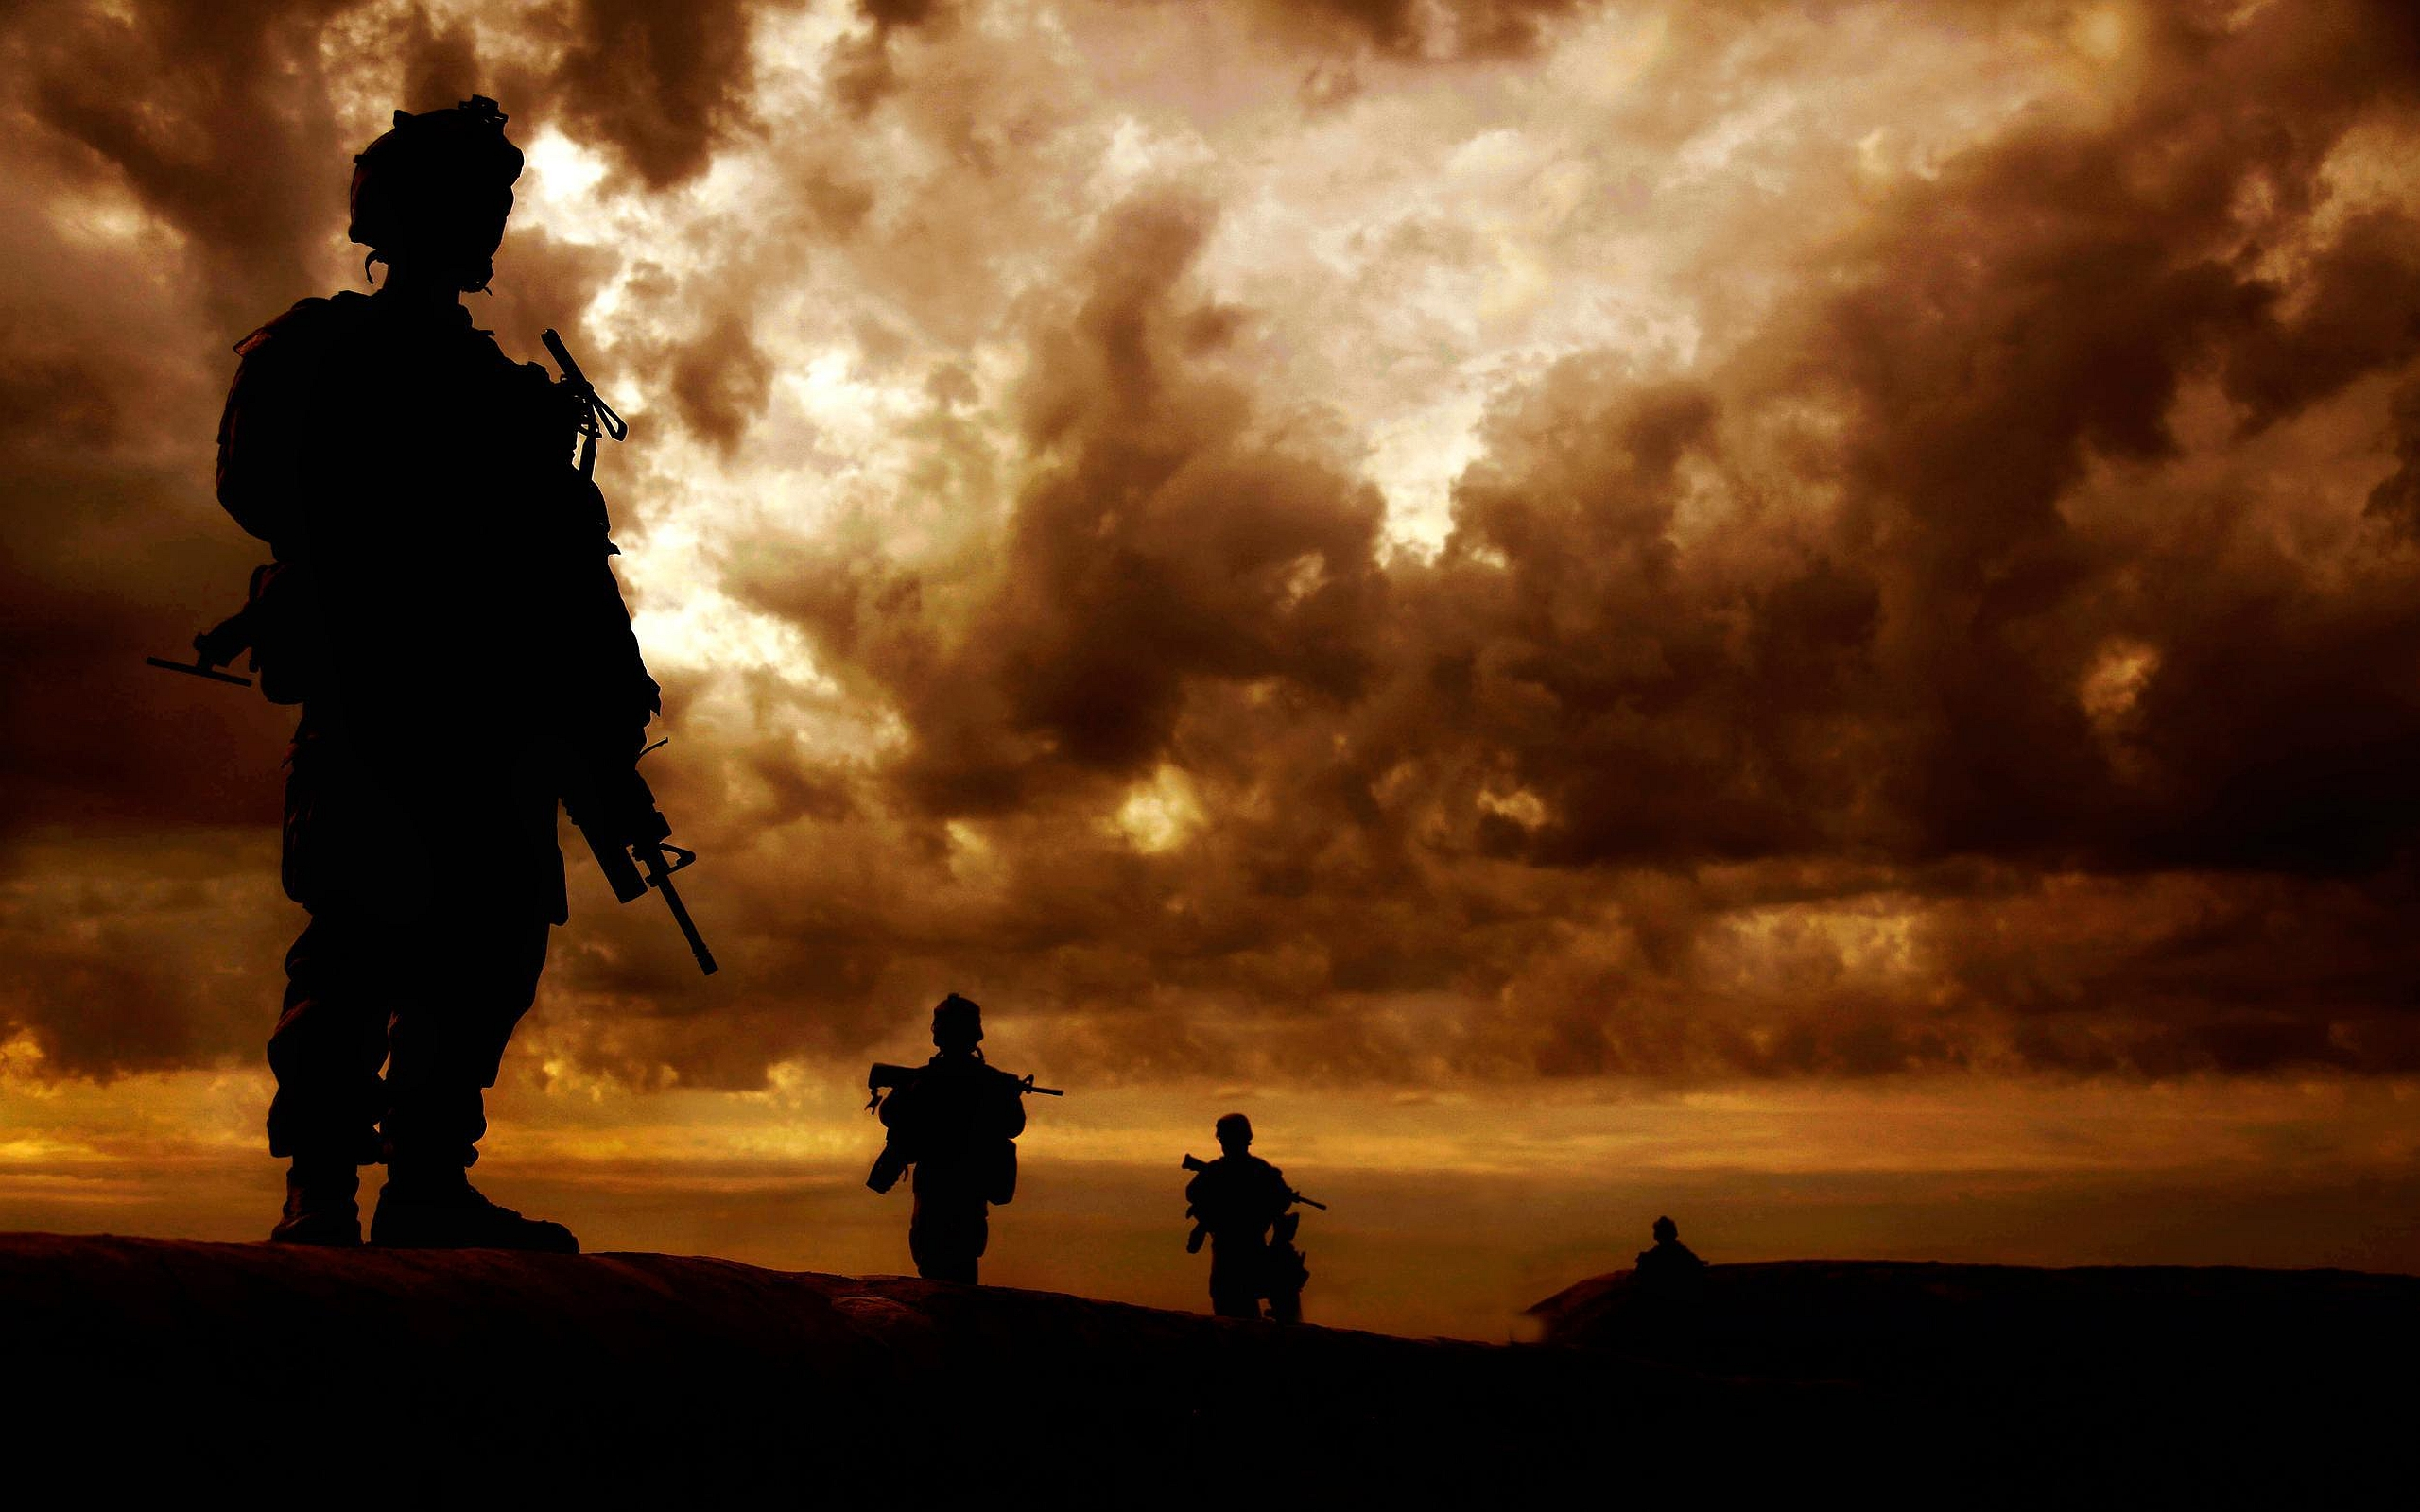 American Soldier Wallpaper Military   soldier wallpapers 2560x1600